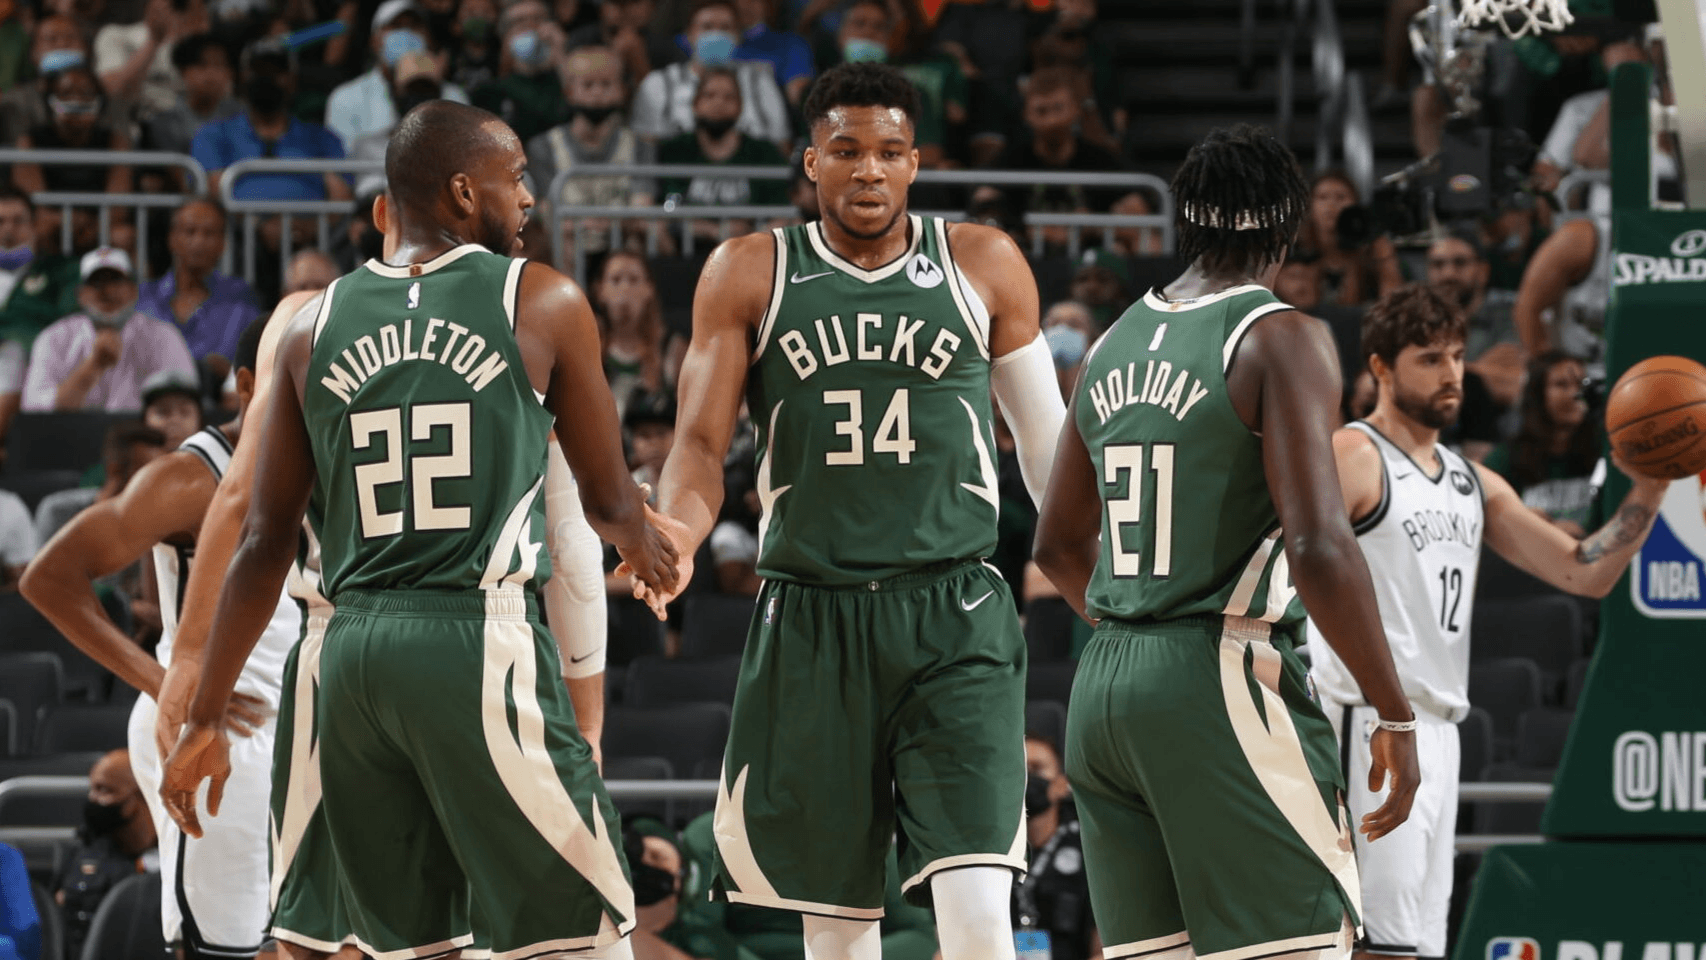 Nets vs Bucks Game 4 Betting Preview: Can the Bucks Tough Out Another Win Over the Nets to Tie Up the Series?